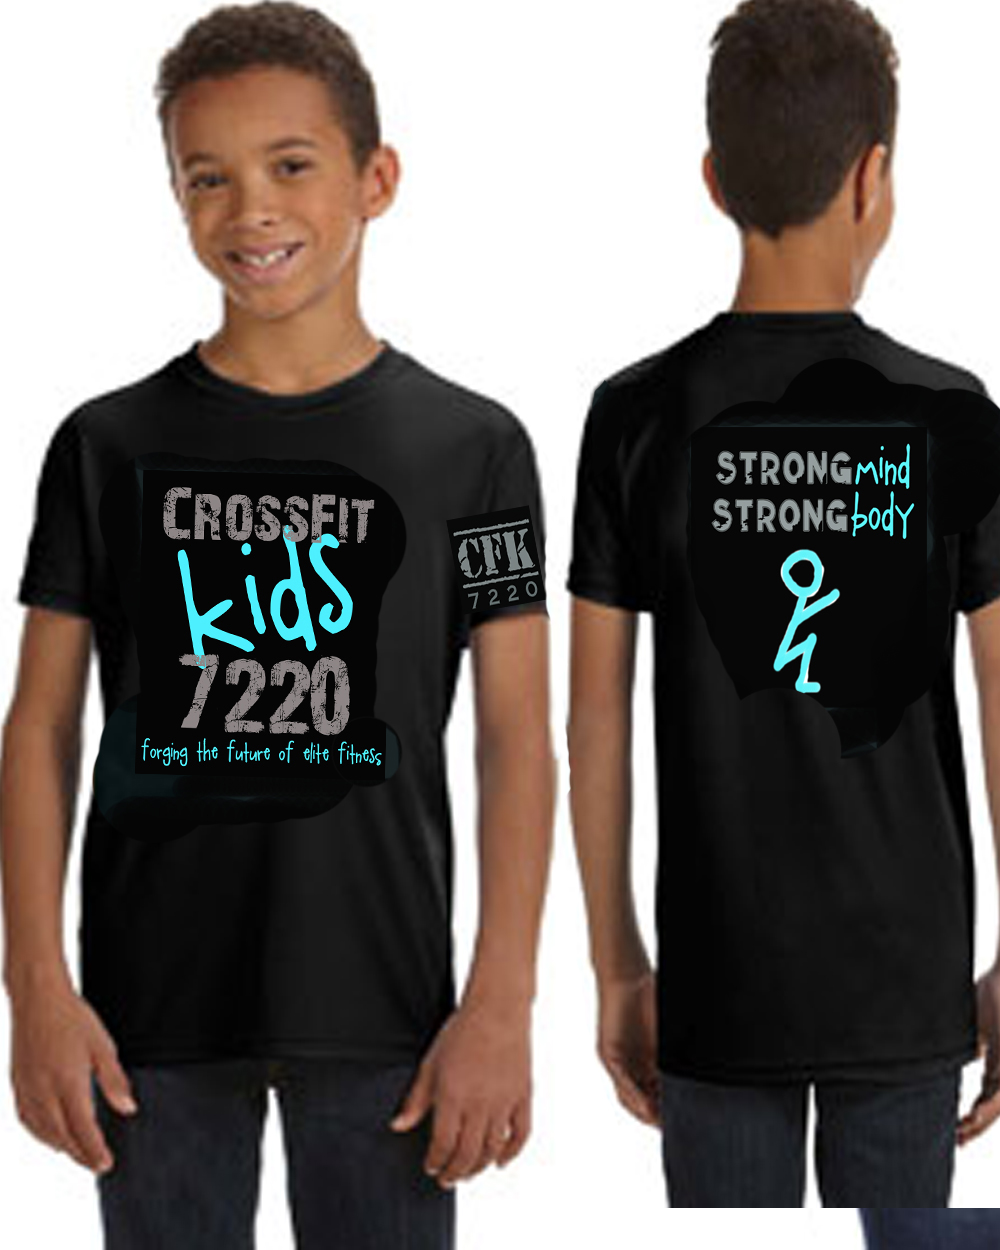 crossfit kids shirts are coming crossfit 7220. Black Bedroom Furniture Sets. Home Design Ideas